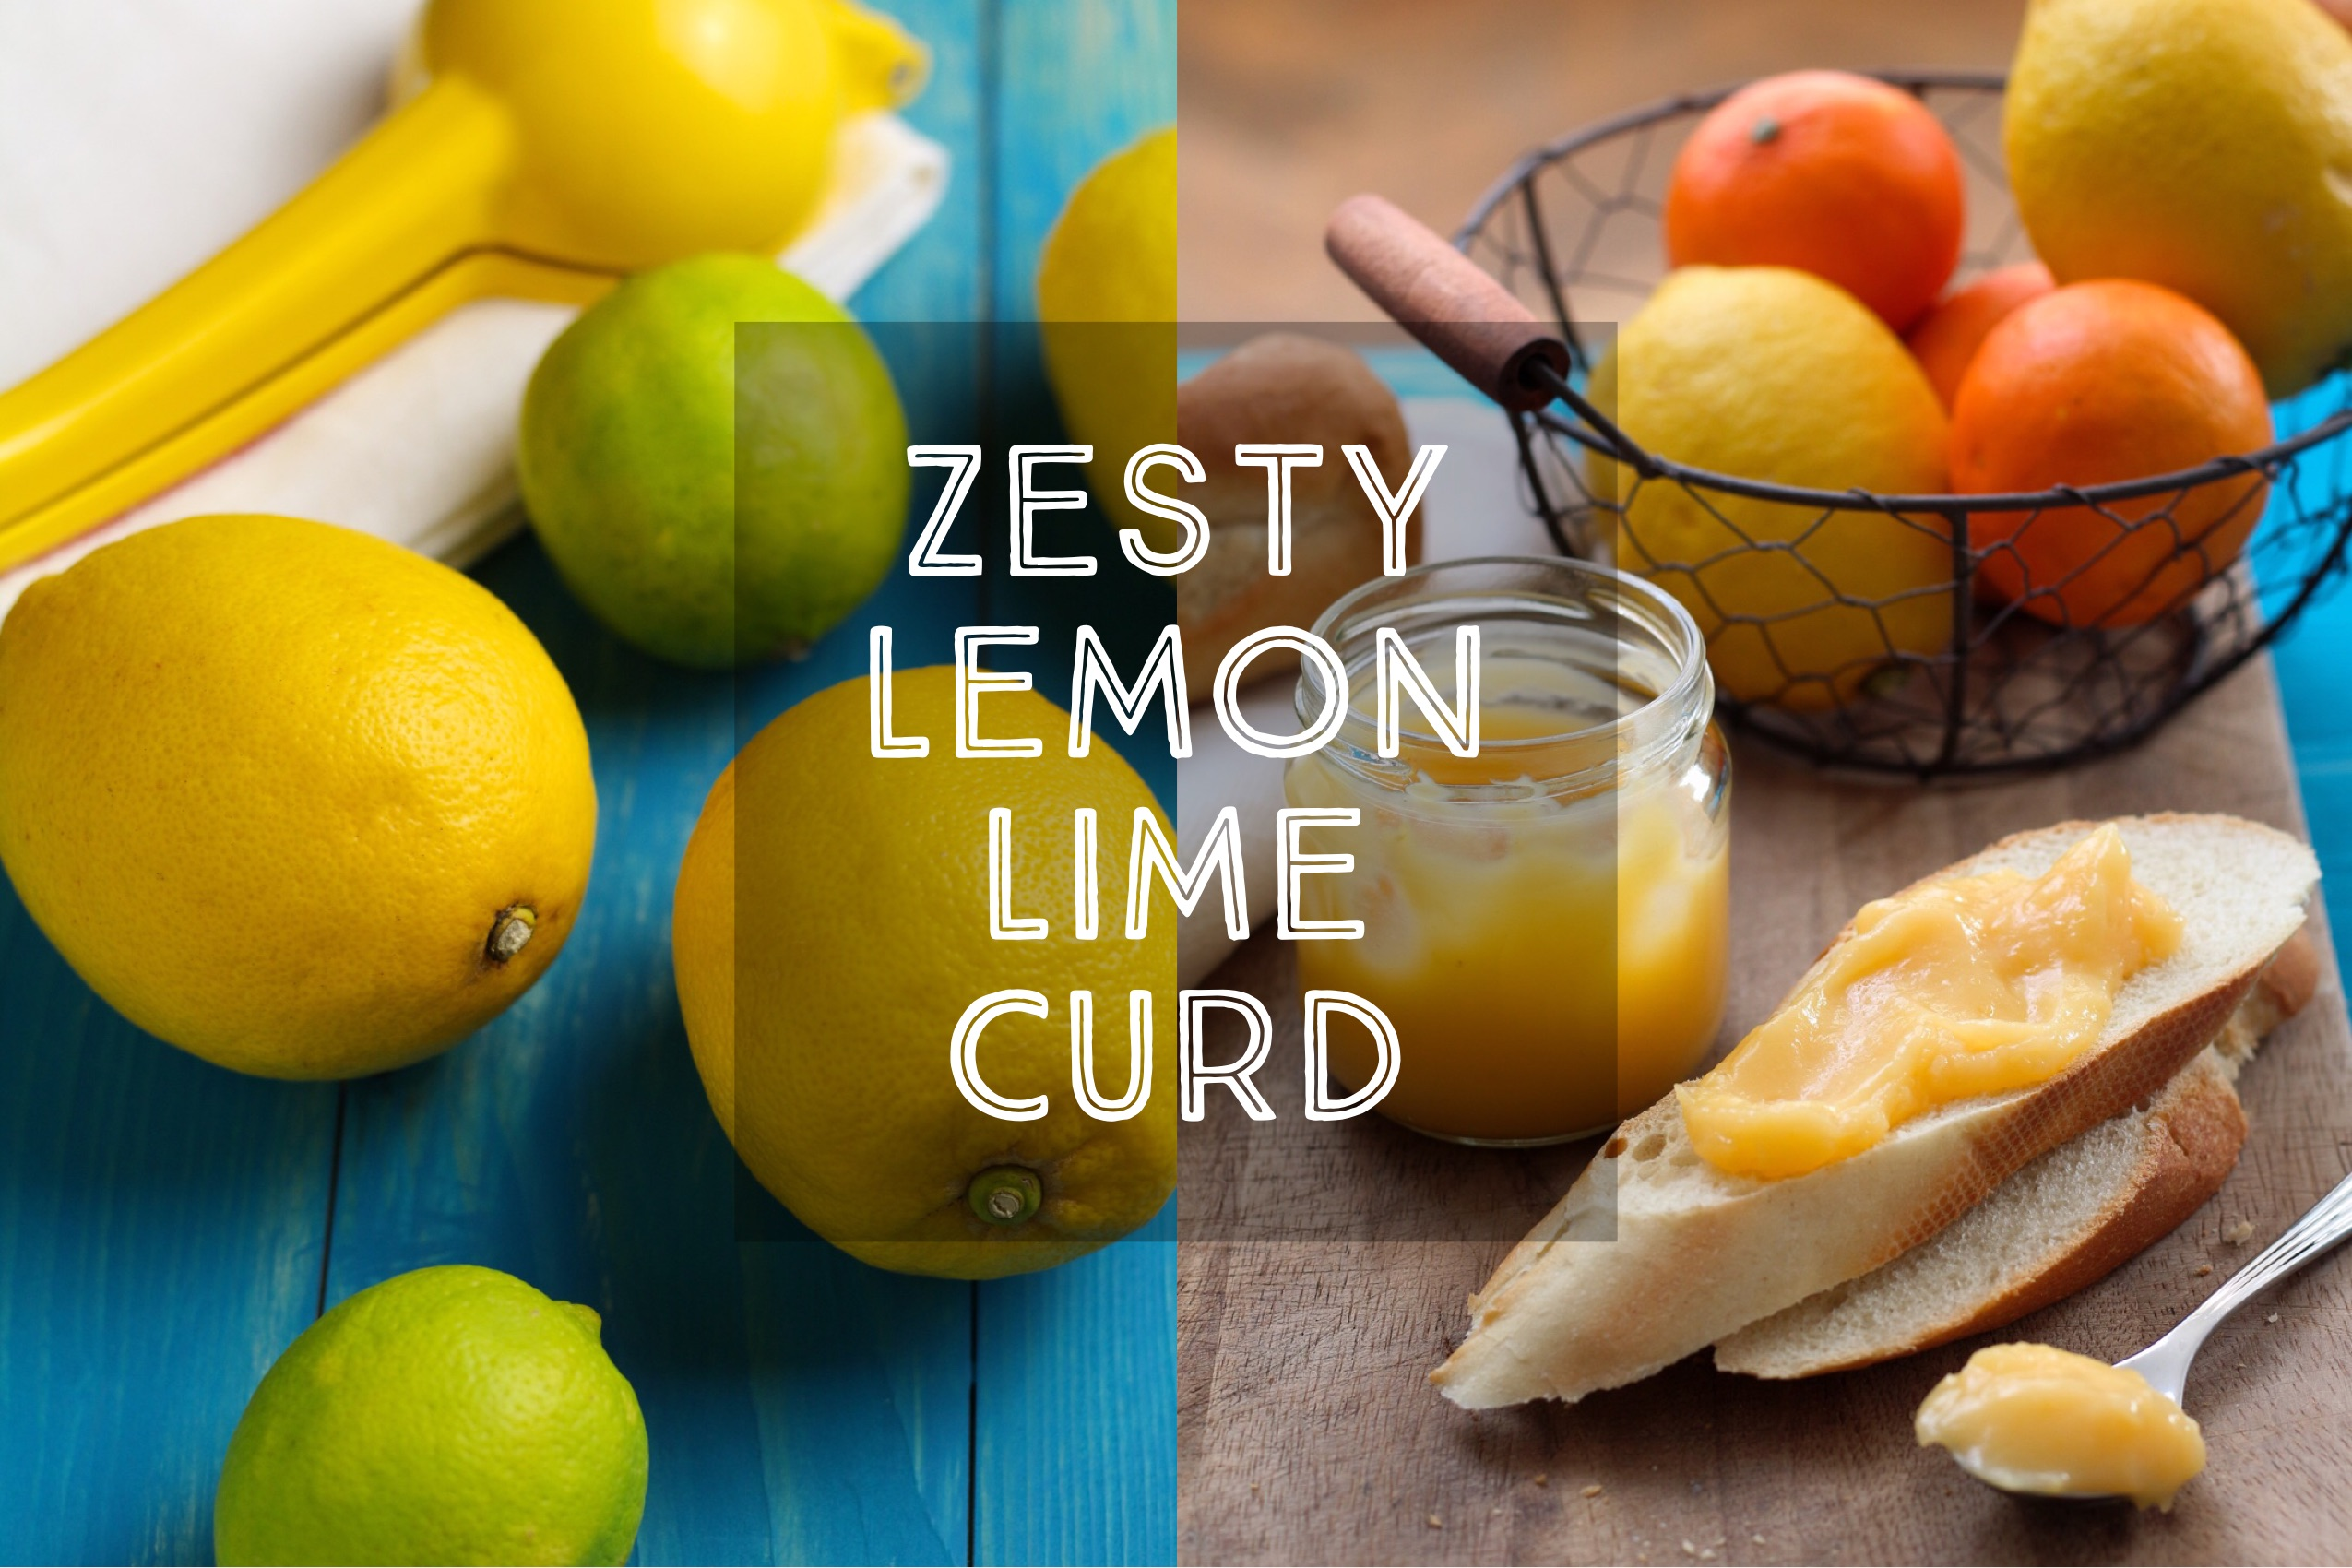 Zesty Lemon Lime Curd